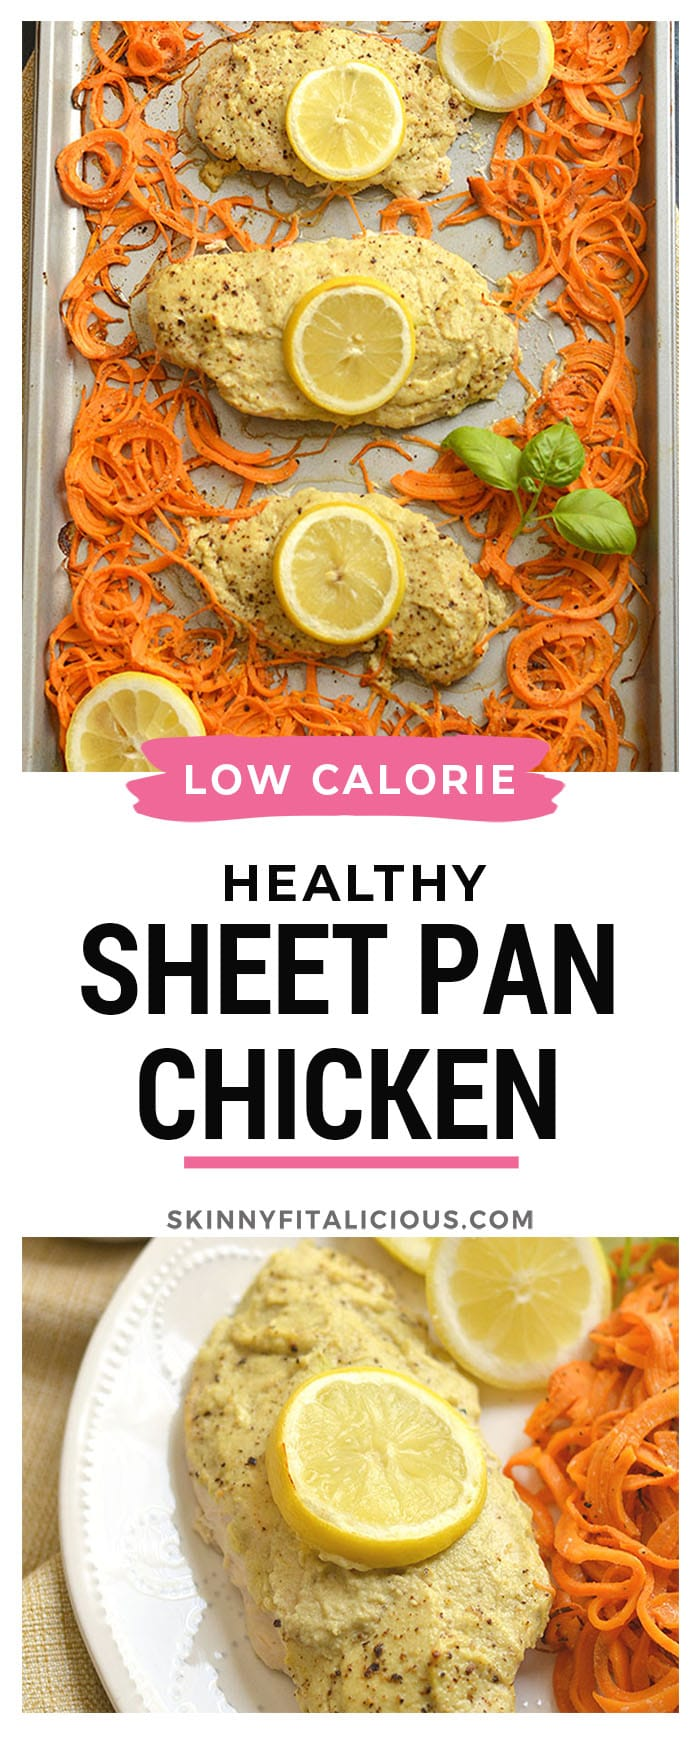 Sheet Pan Hummus Chicken marinated in Paleo zucchini hummus turns boring chicken into a flavorful meal. Paired withspiralized sweet potato for a french fry like side. All made on one sheet pan in 20 minutes! Paleo + Gluten Free + Low Calorie